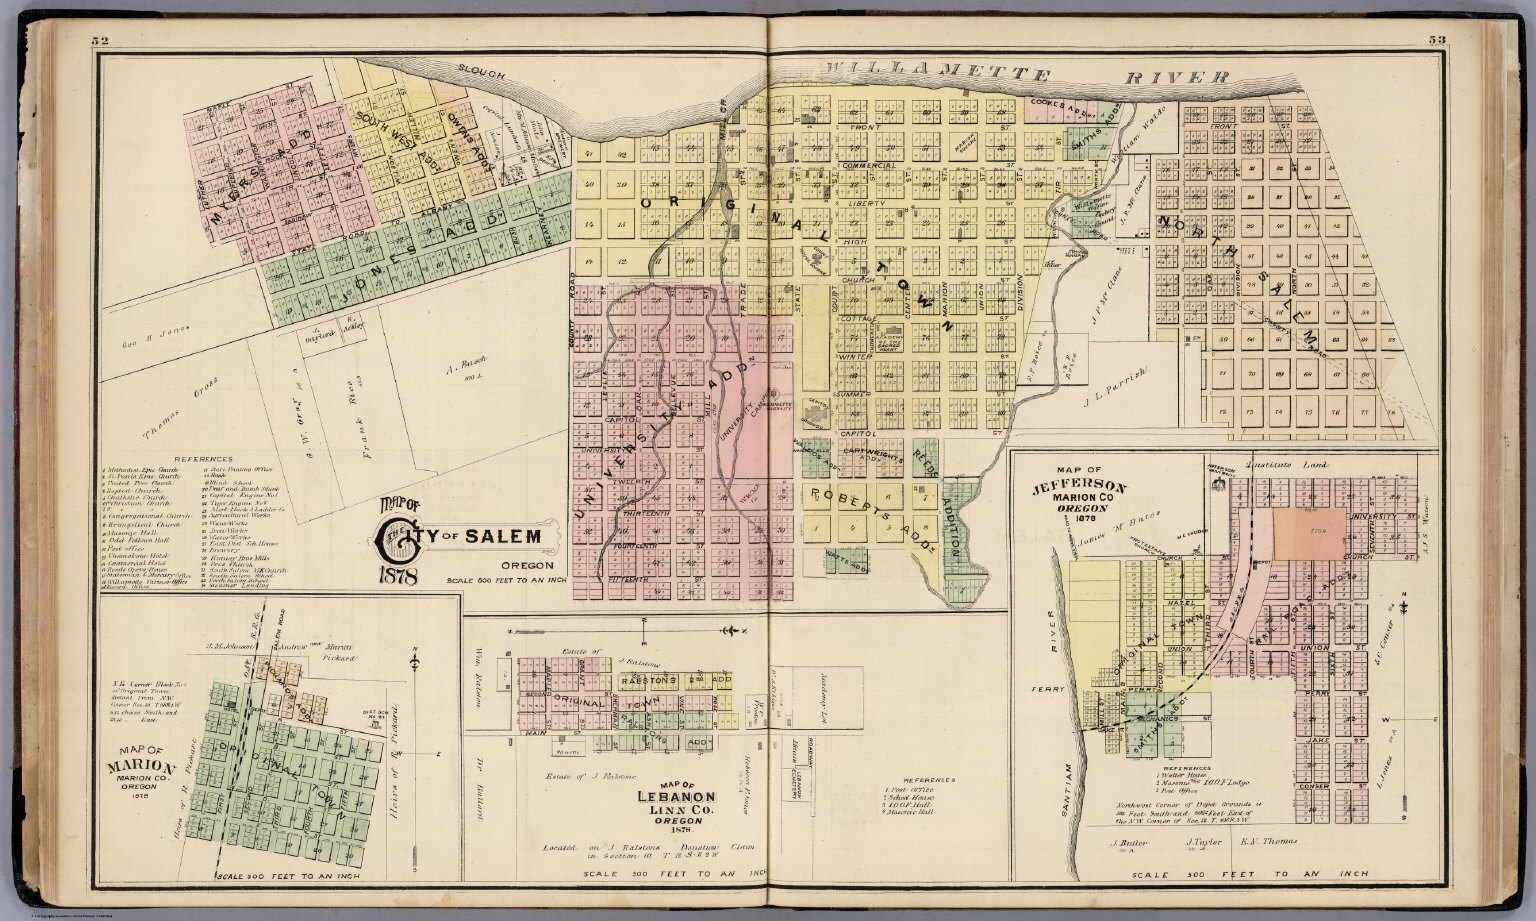 City of Salem, Oregon, 1878. - David Rumsey Historical Map ...